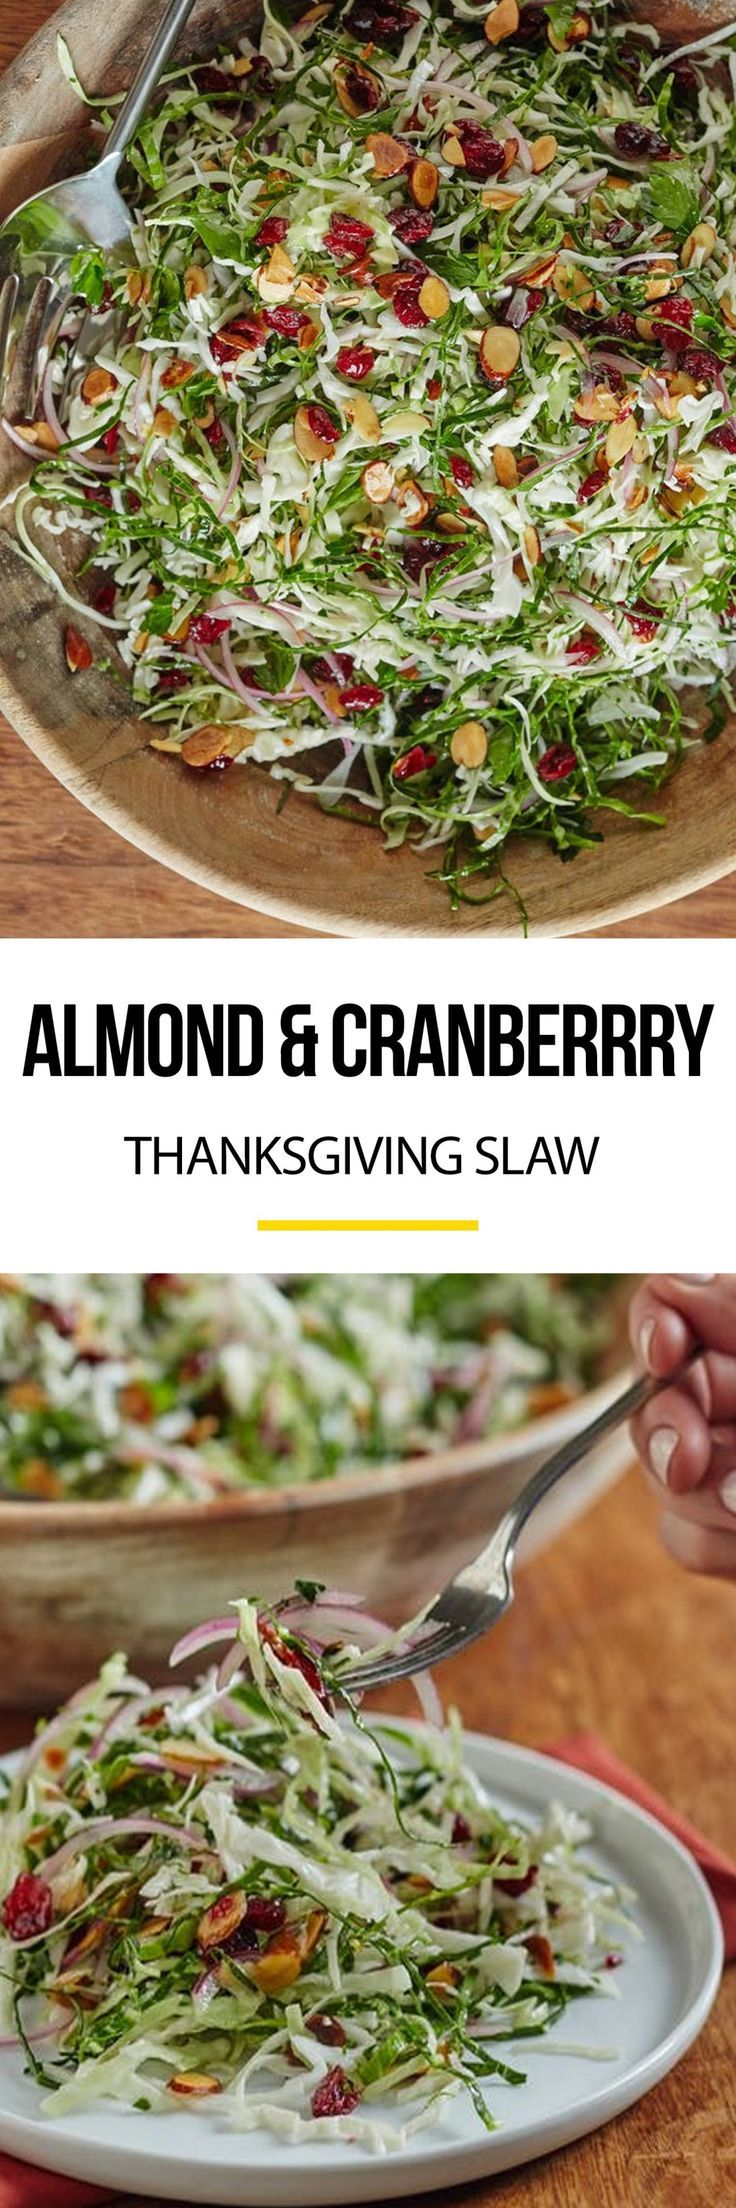 Almond and Cranberry Thanksgiving Slaw Recipe. Your Thanksgiving menu - whether classic or modern - doesn't need salad recipes for ideas for side dishes: it needs this slaw! No sides will top the delicious, vegetarian, healthy flavors and textures in this dish. It's even great for a high fiber lunch to make ahead and pack for work, or a weeknight addition to dinner.